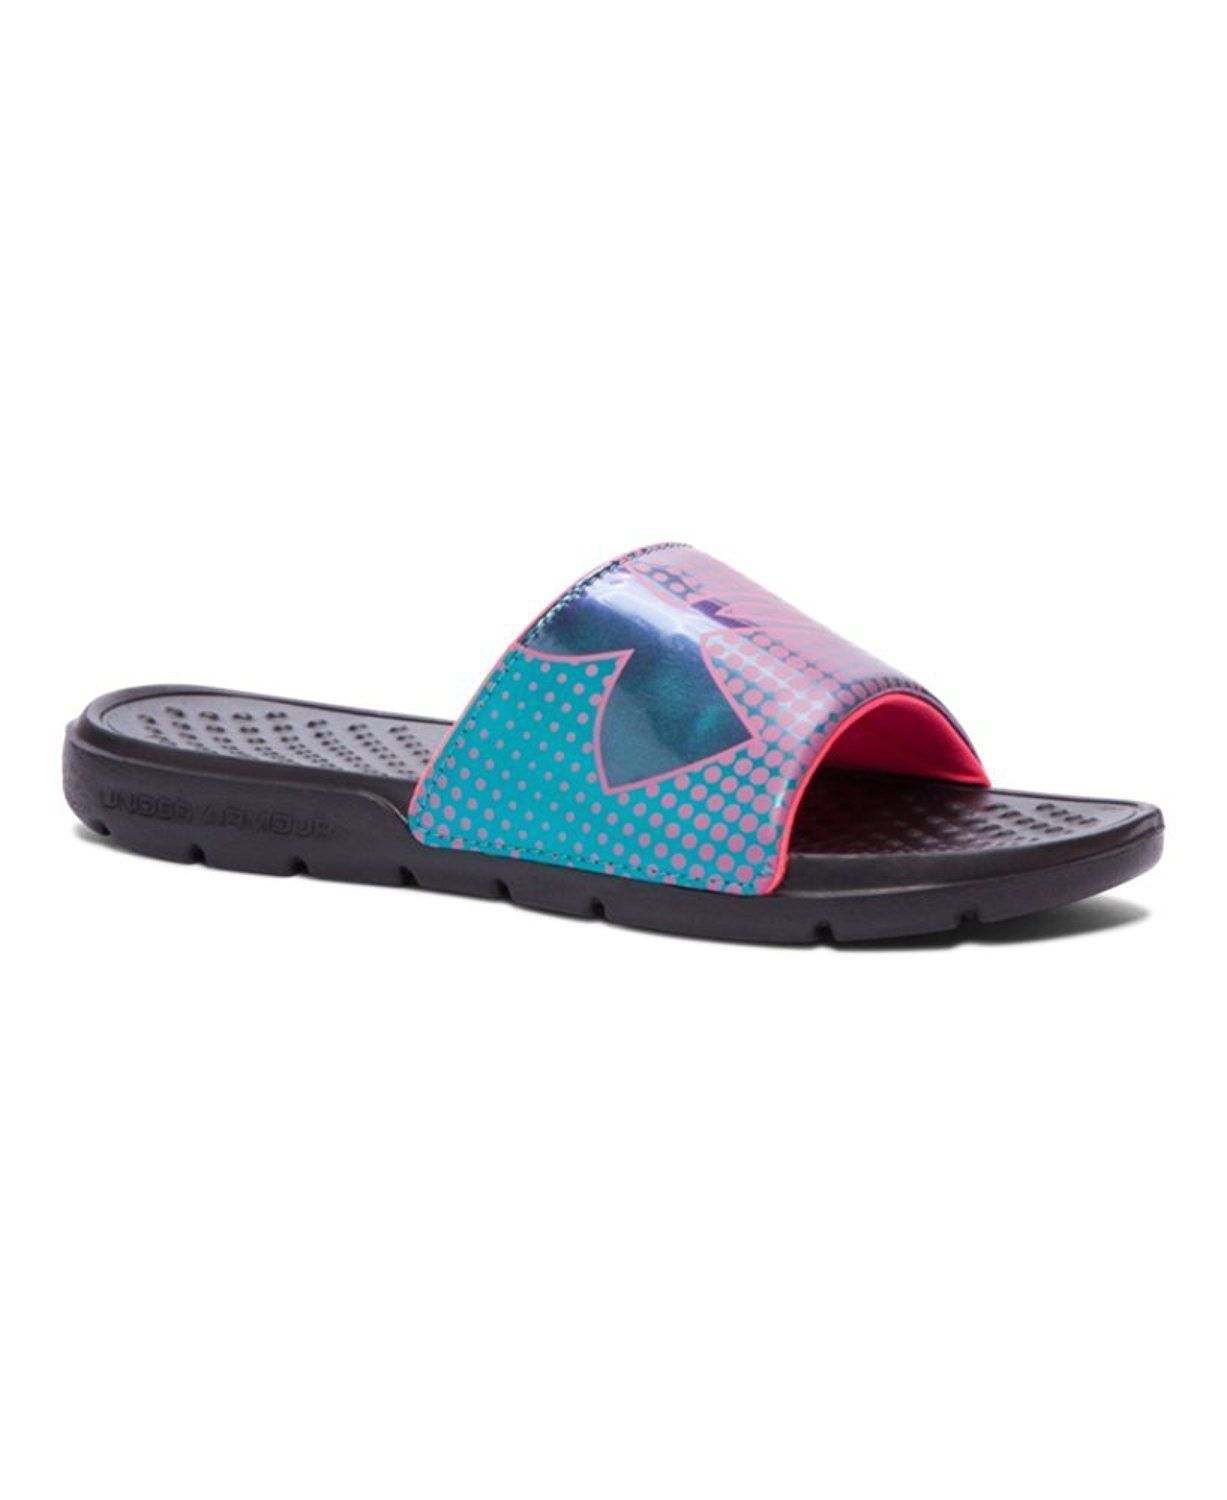 best service 07093 10647 Under Armour Girls  UA Strike Ombre Slides    Unbelievable item right here!    Girls sandals